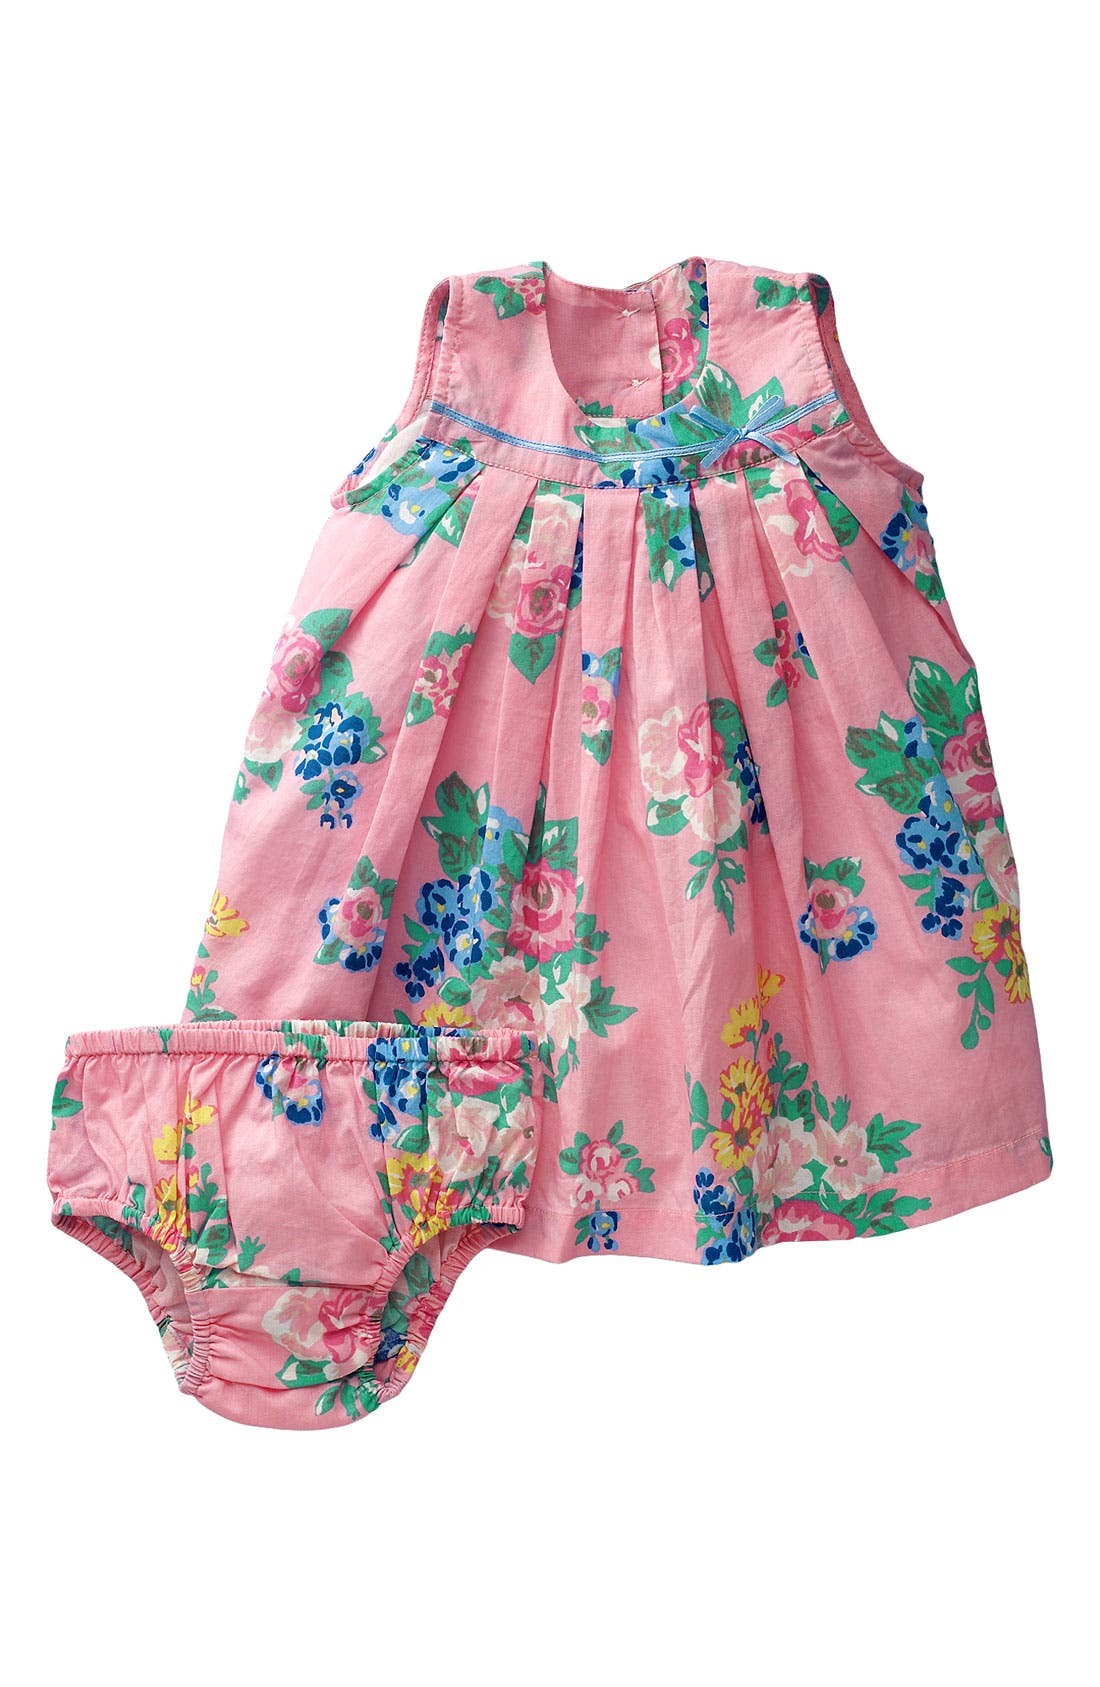 Alternate Image 1 Selected - Mini Boden Pleated Day Dress (Infant)